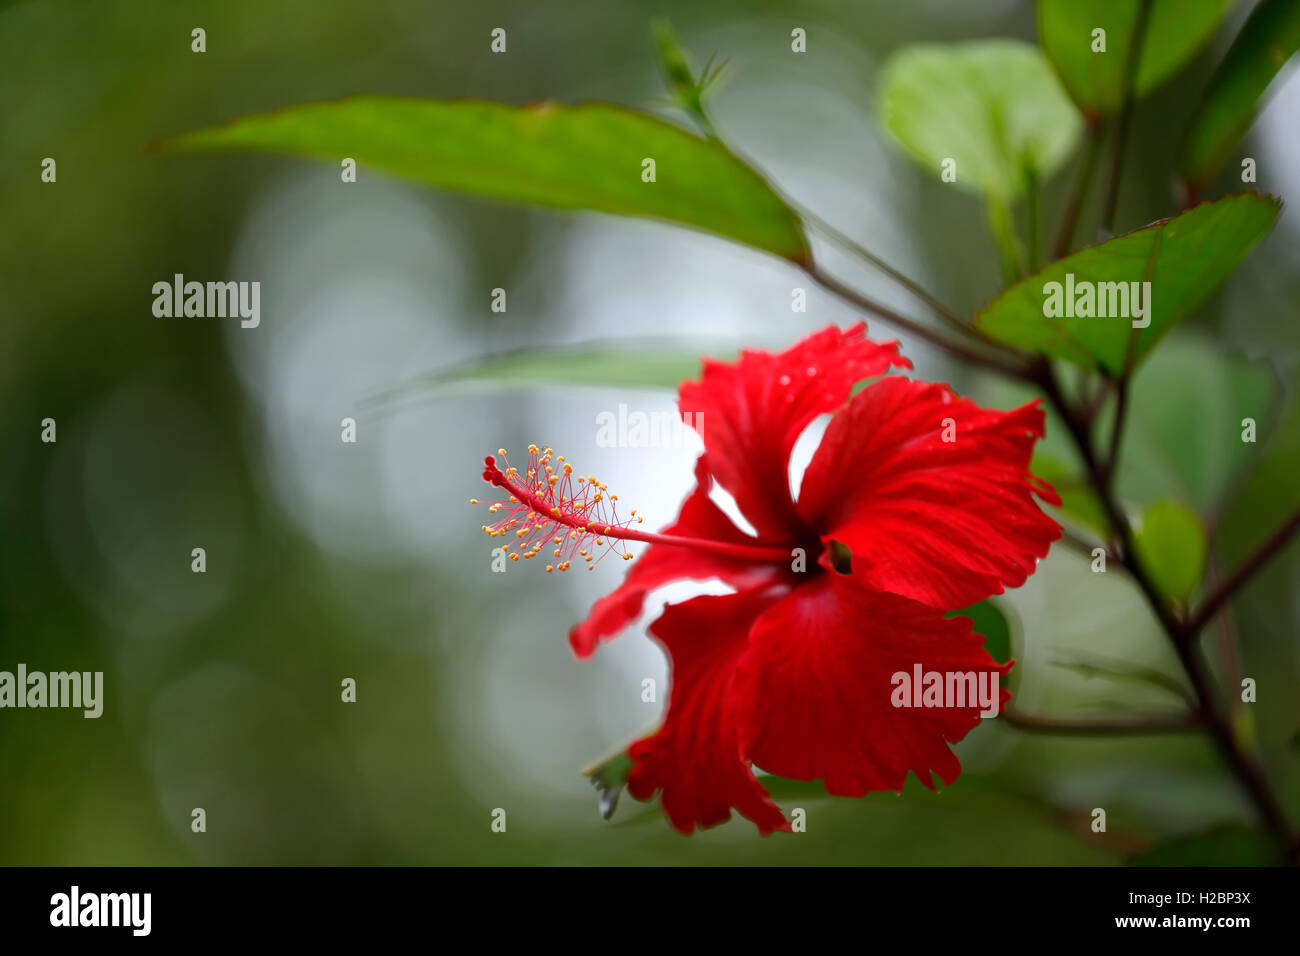 Red flowers and caribbean stock photos red flowers and caribbean puerto rican hibiscus amapola thespesia grandiflora caribbean national forest el yunque izmirmasajfo Choice Image